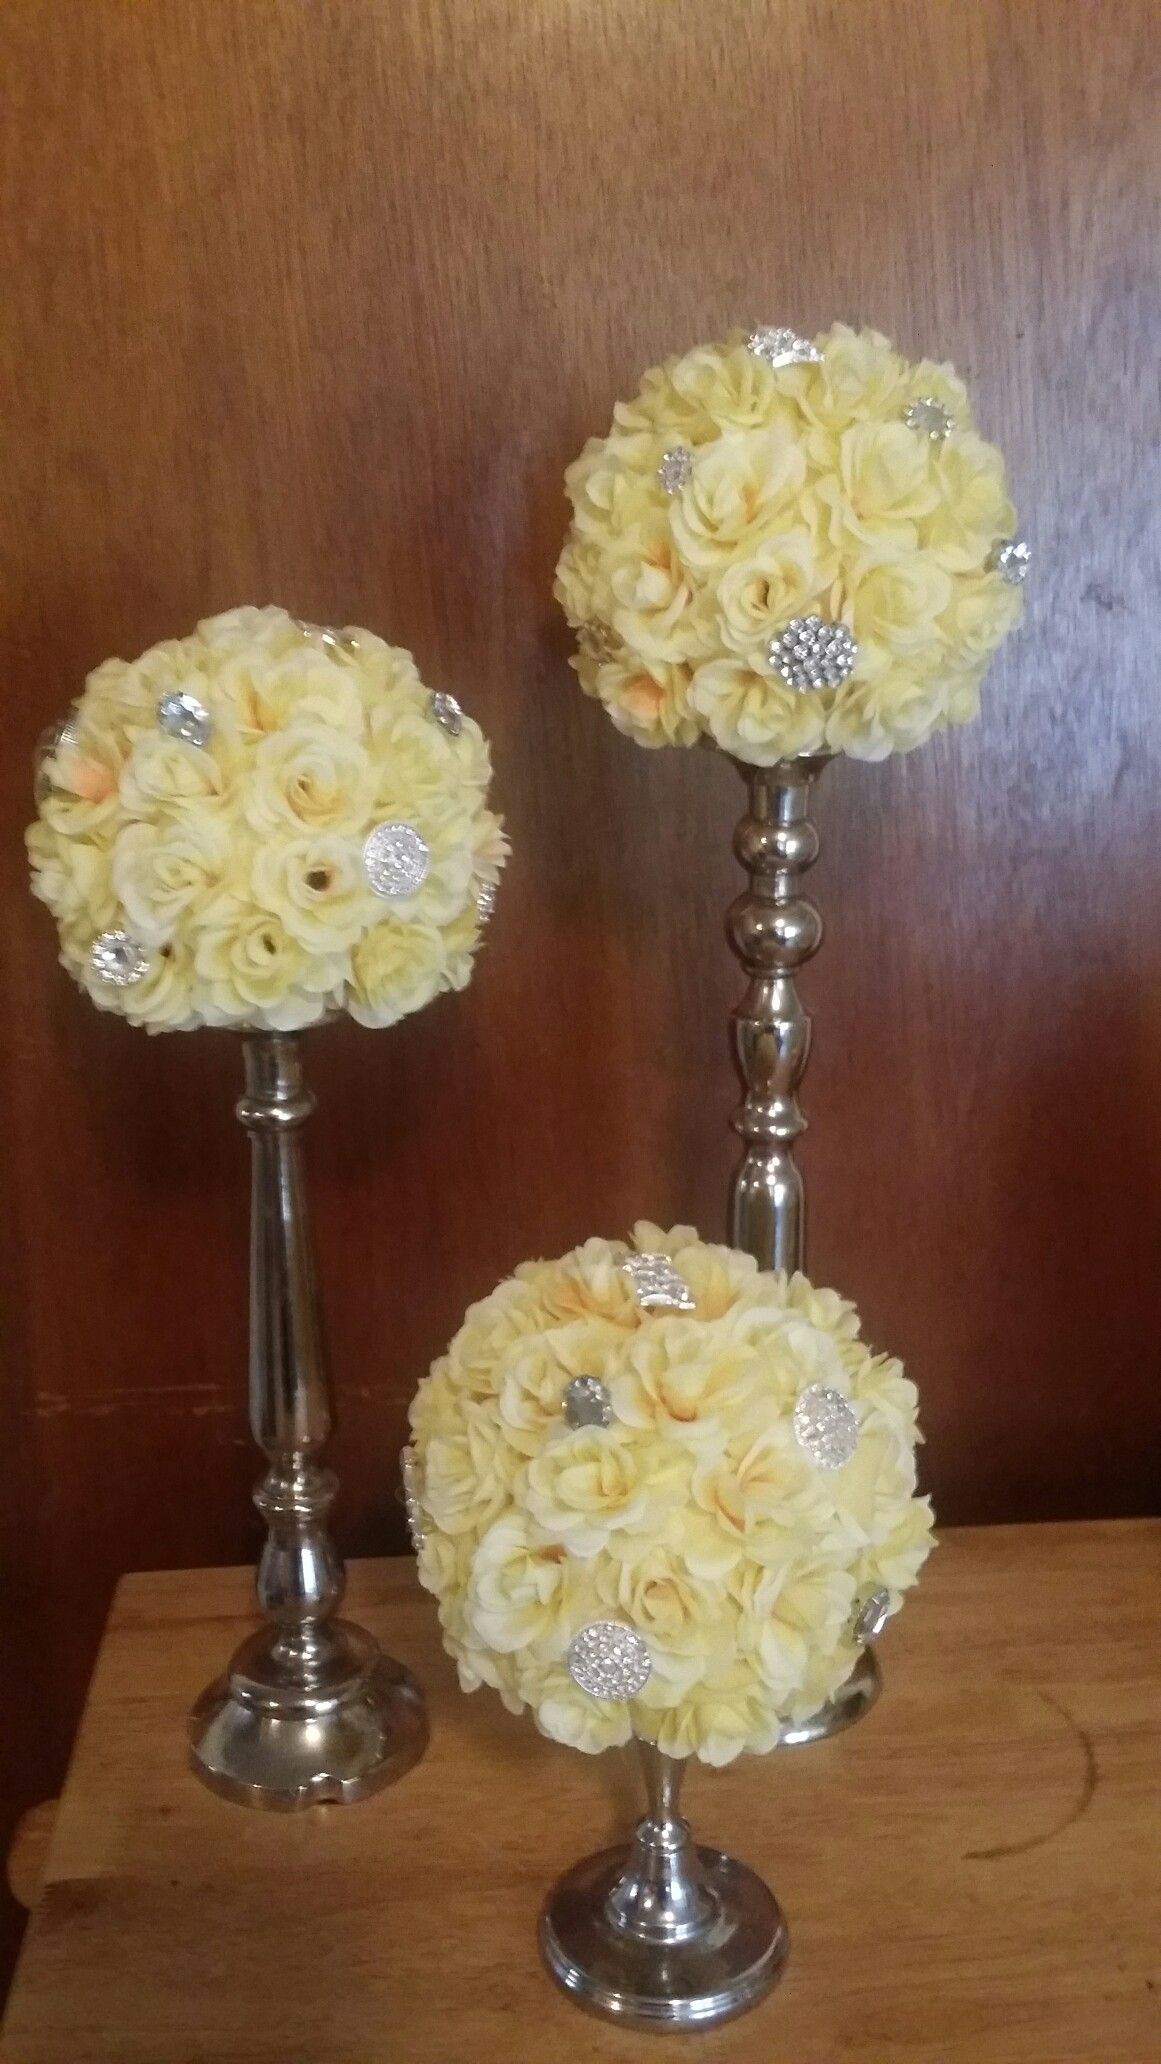 Yellow roses on silver candle holders with bling accents projects